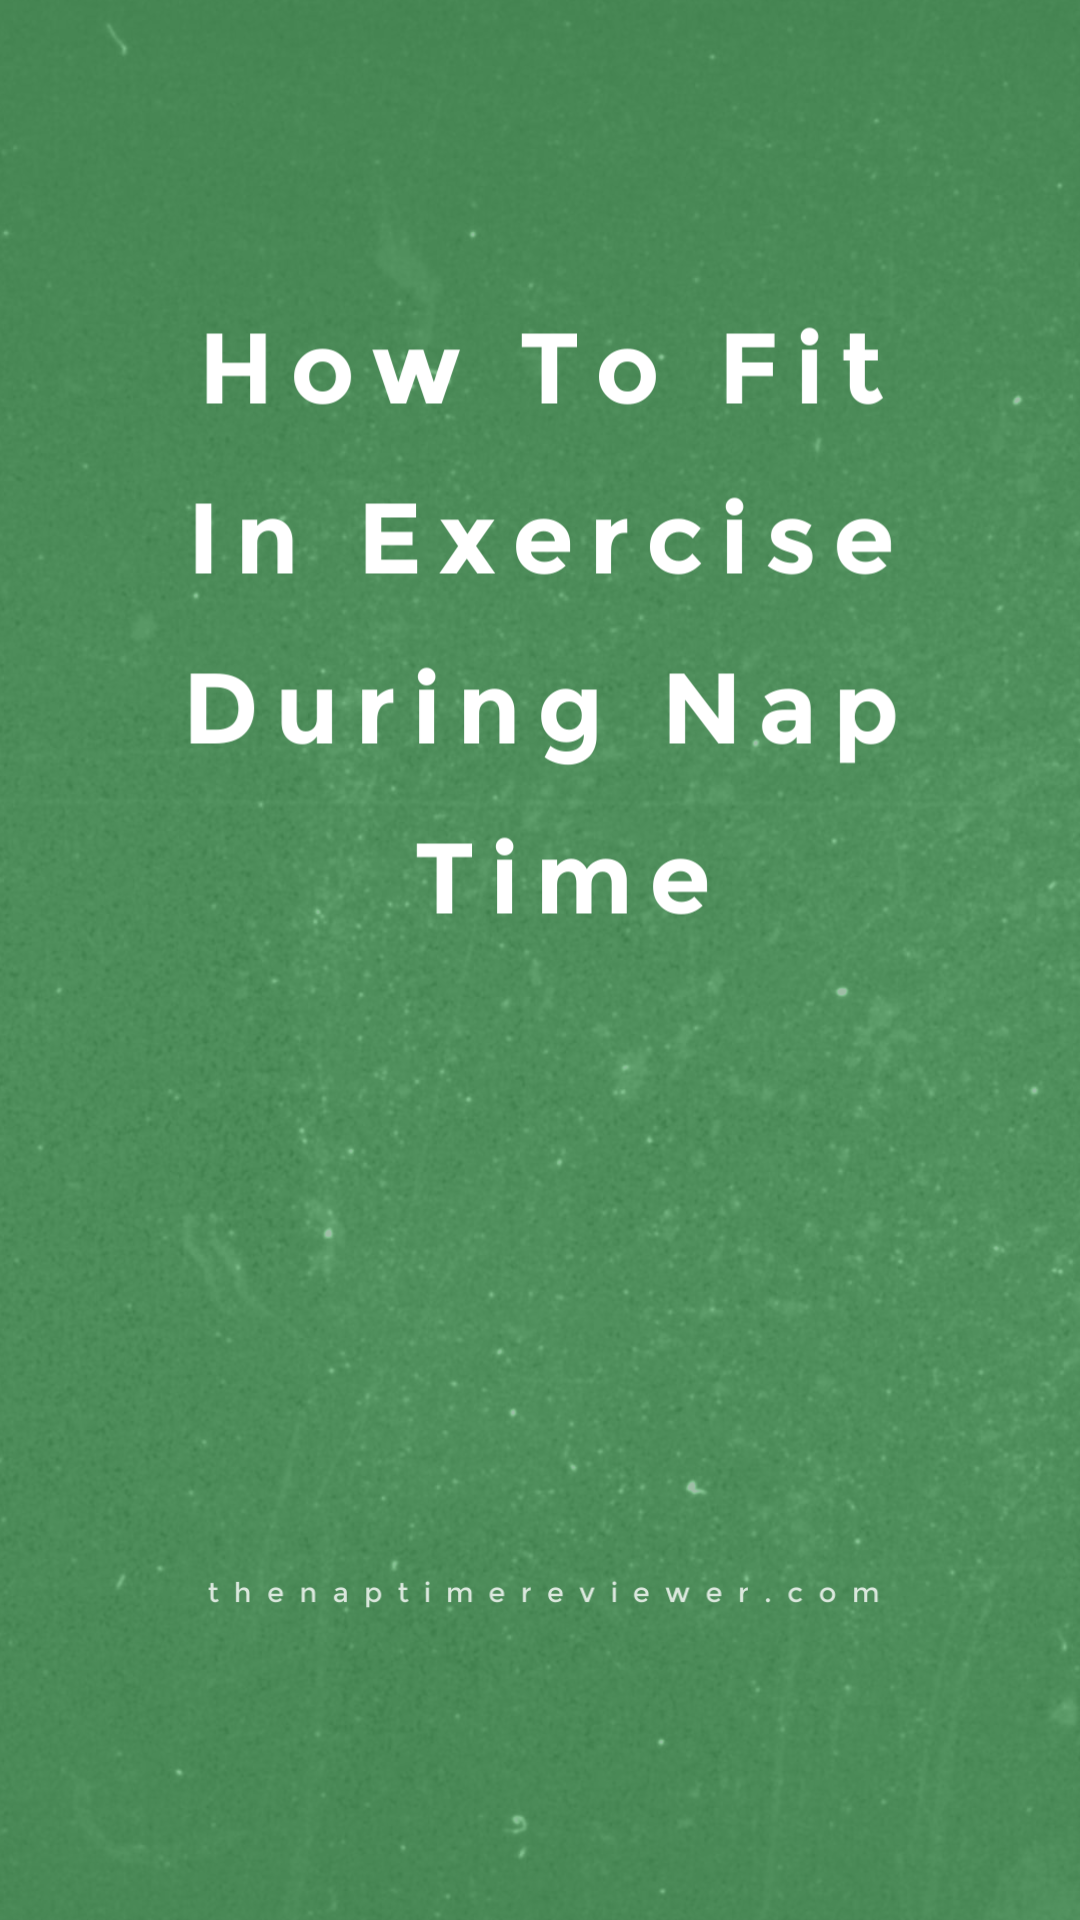 How To Fit In Exercise During Nap Time